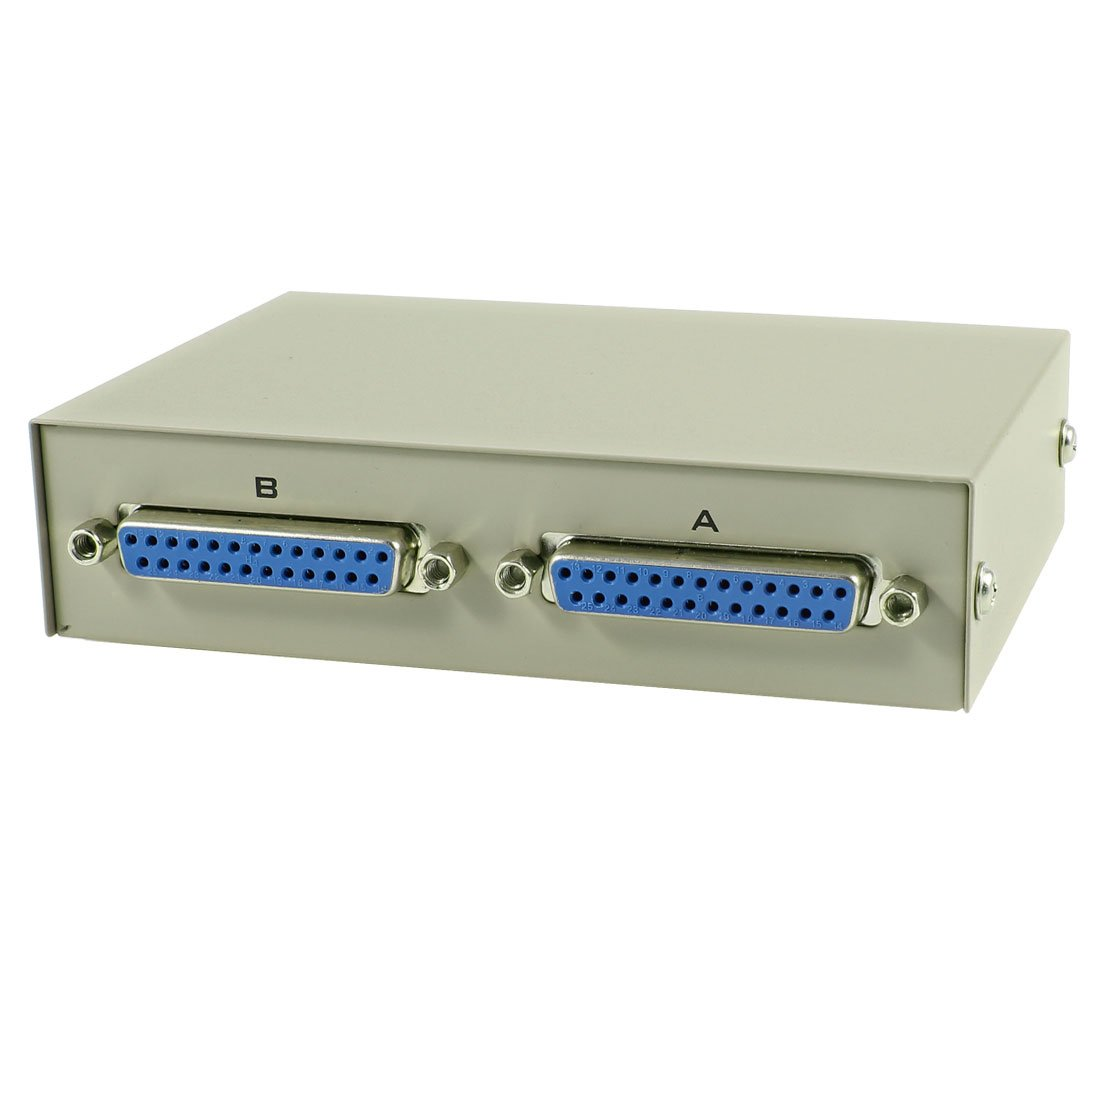 uxcell 2 Port 25 Pin DB-25 Manual Parallel Printer Sharing Switch Box